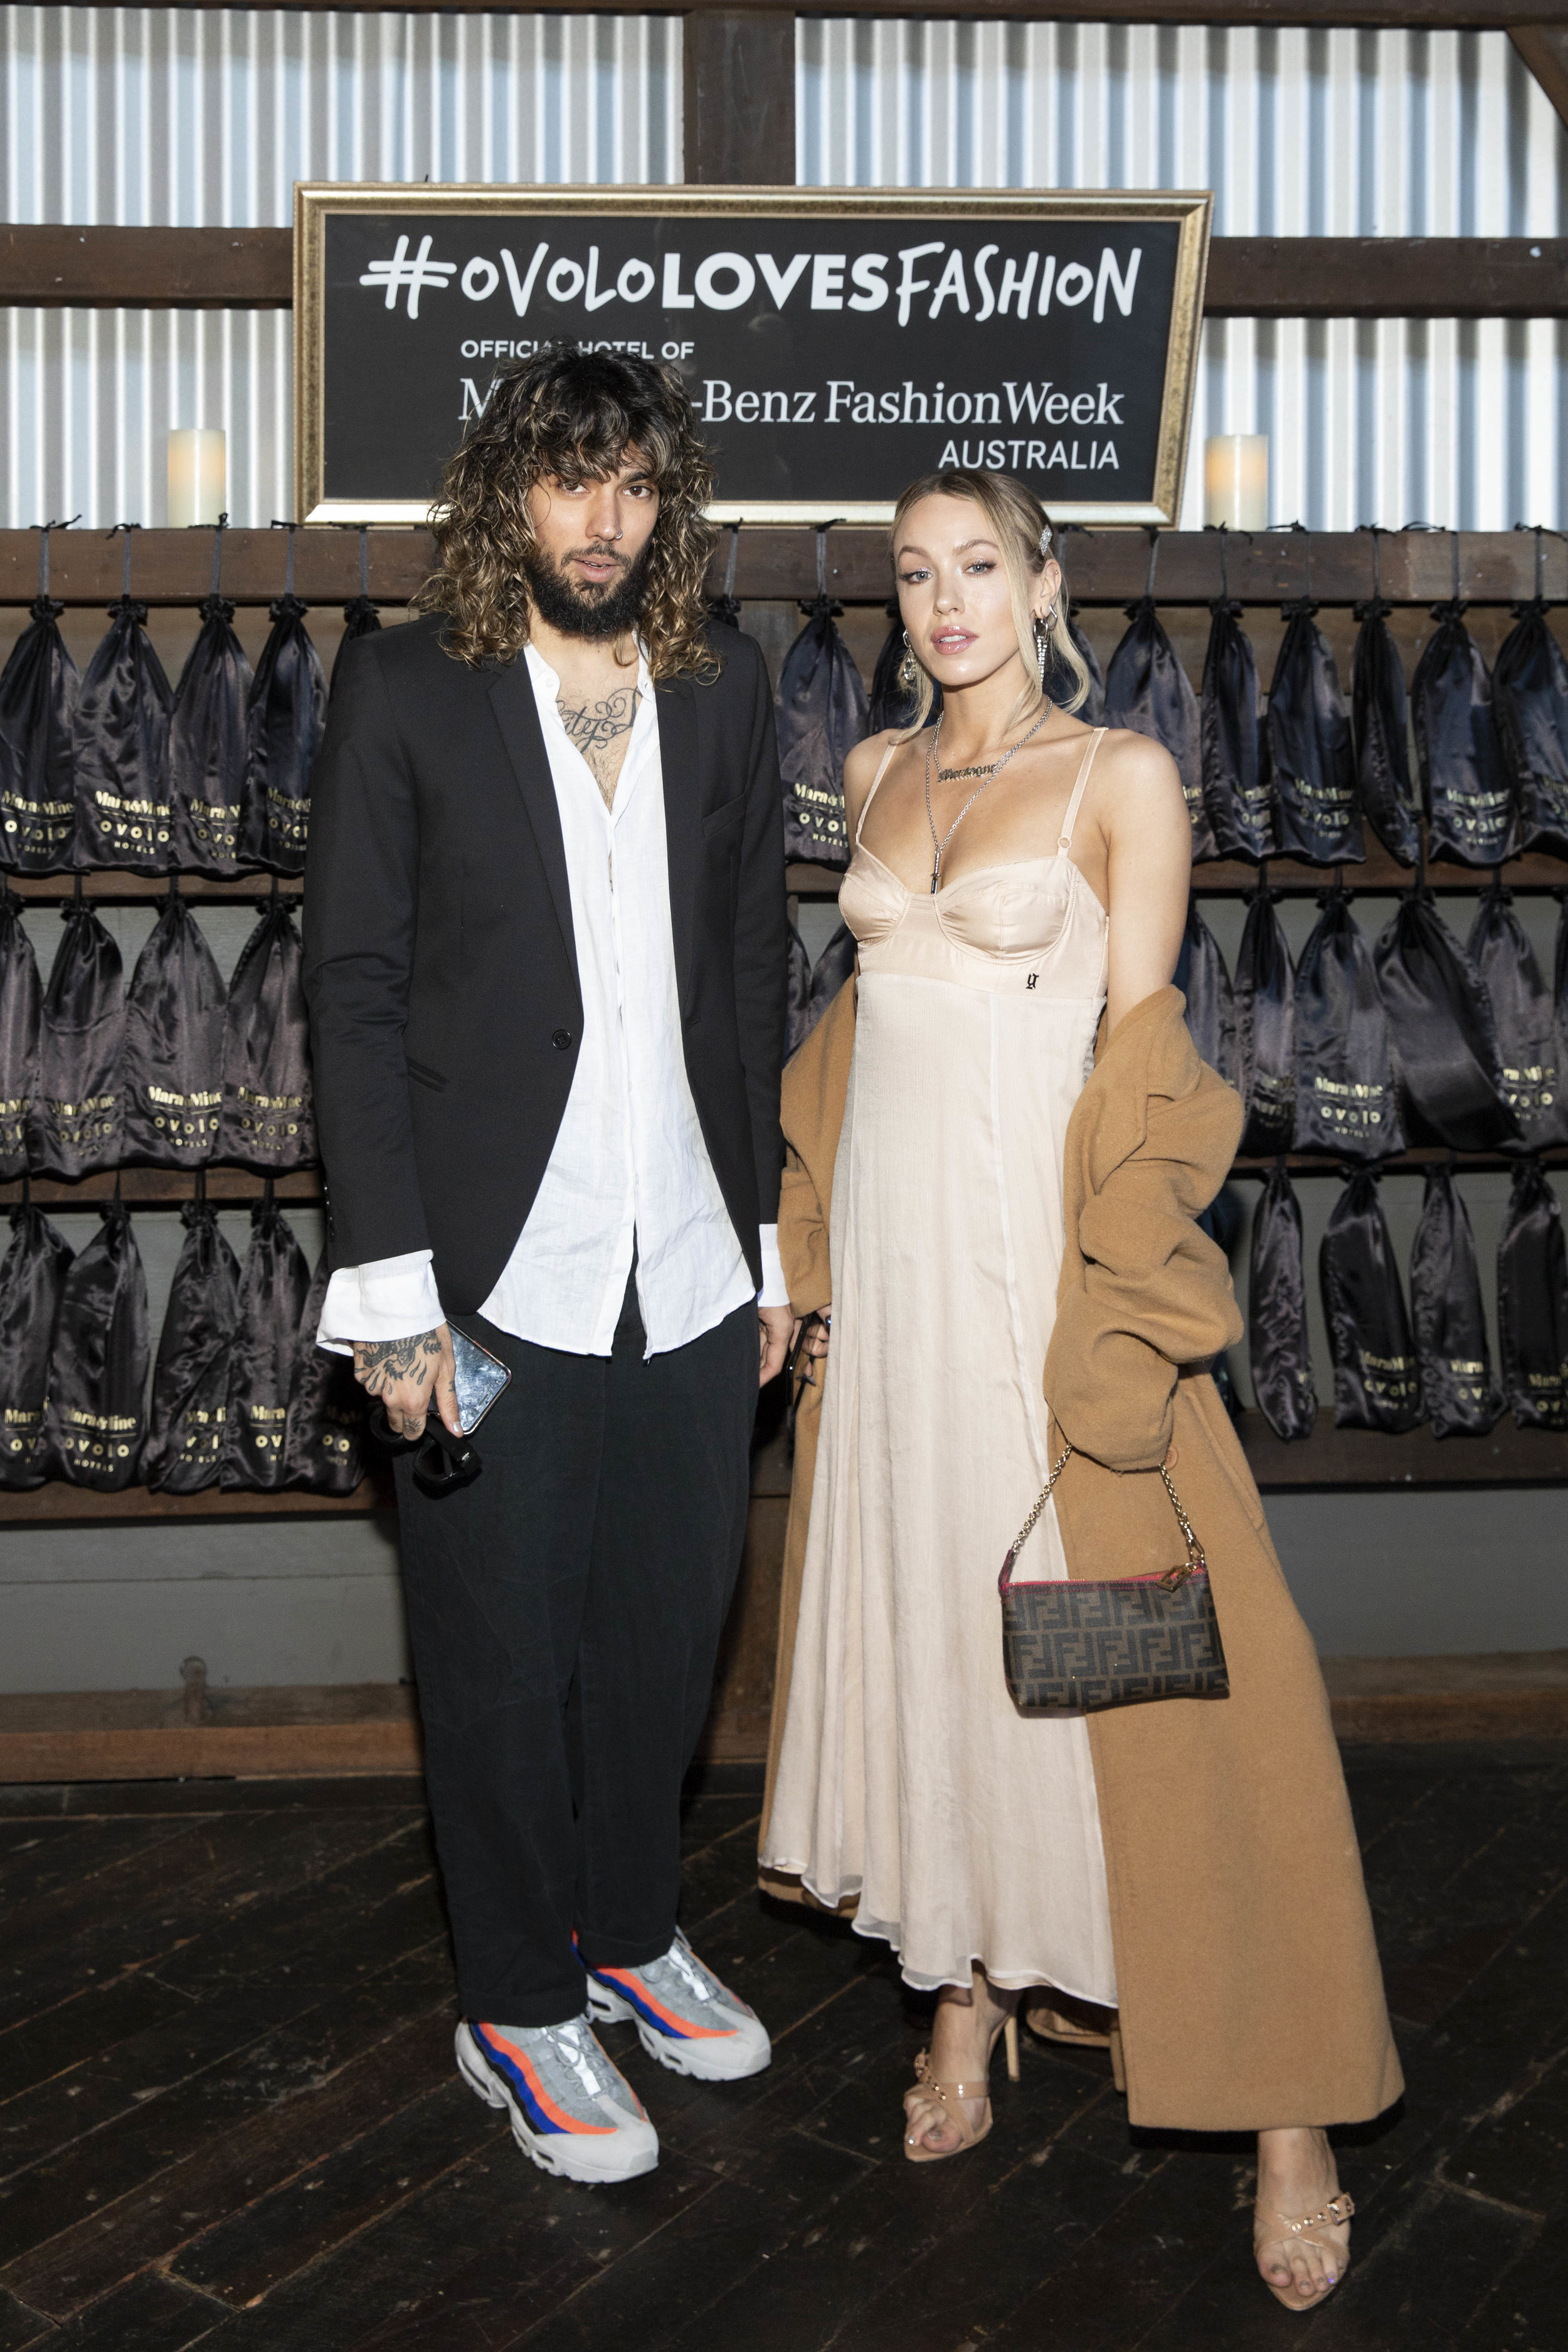 OVOLO x MOET MBFWA BRUNCH EVENT- Jay Millionaires and Imogen Anthony.jpg